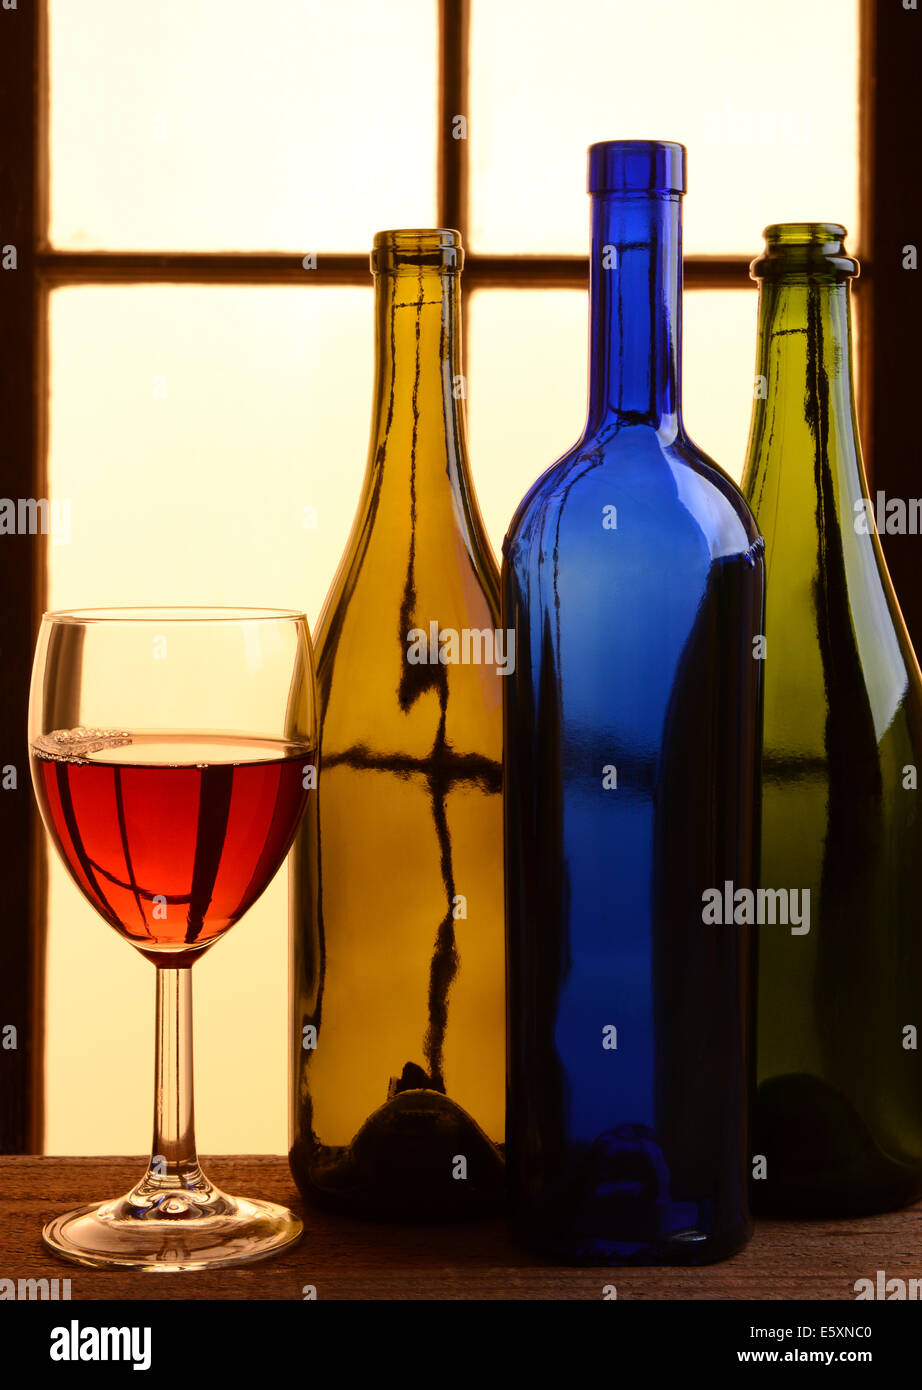 A wine still life with warm tones. Three different wine bottles and a glass of red wine in front of a window with - Stock Image